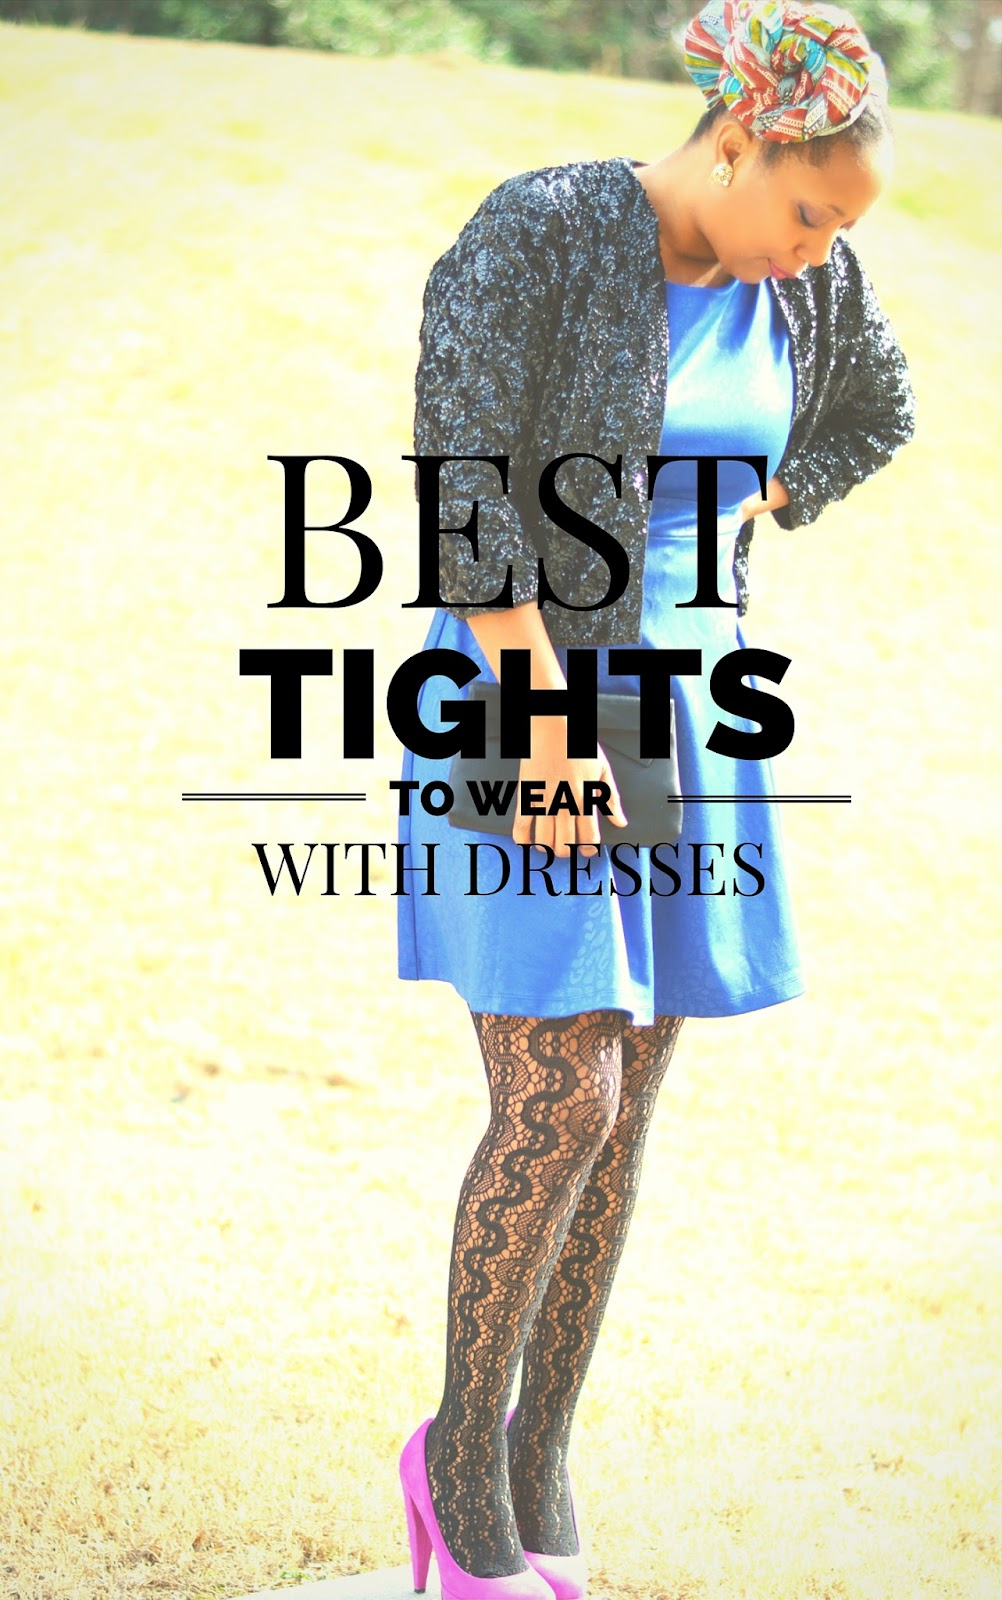 best tights to wear with dresses